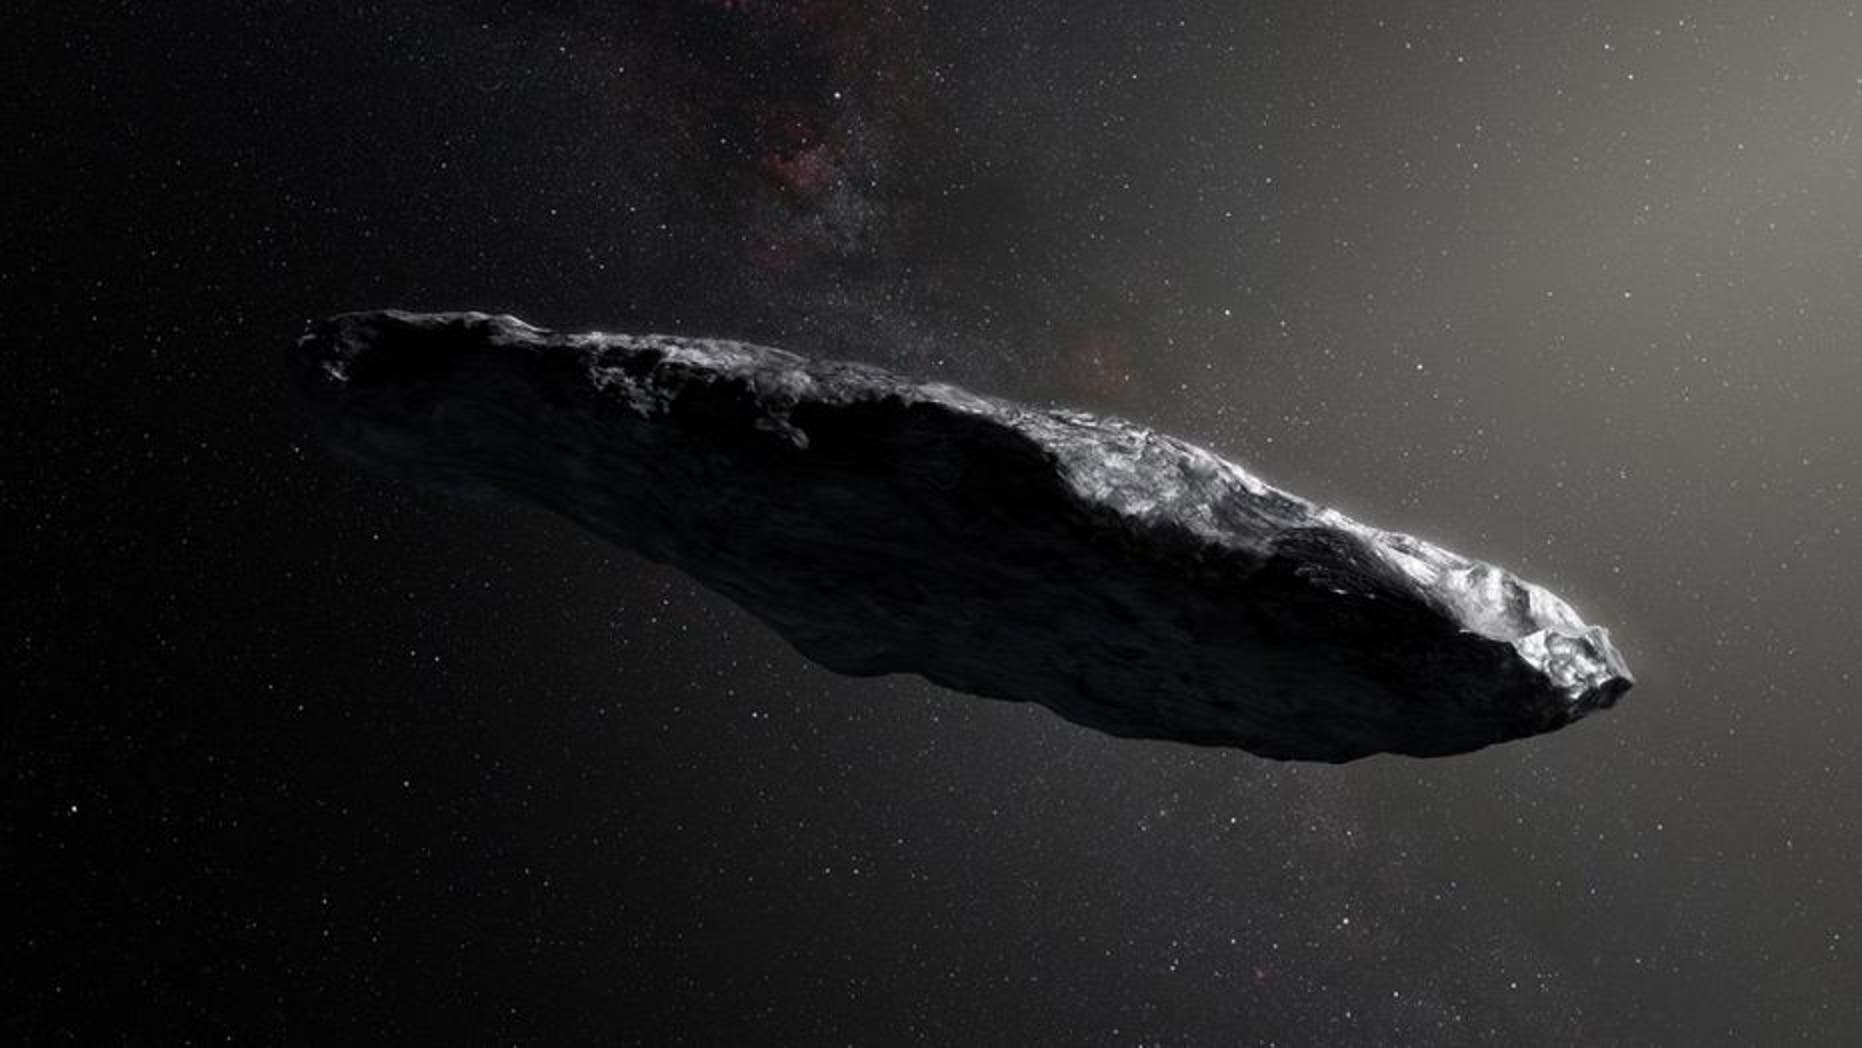 Scientists reveal mysterious 'Oumuamua' object could be an alien spacecraft